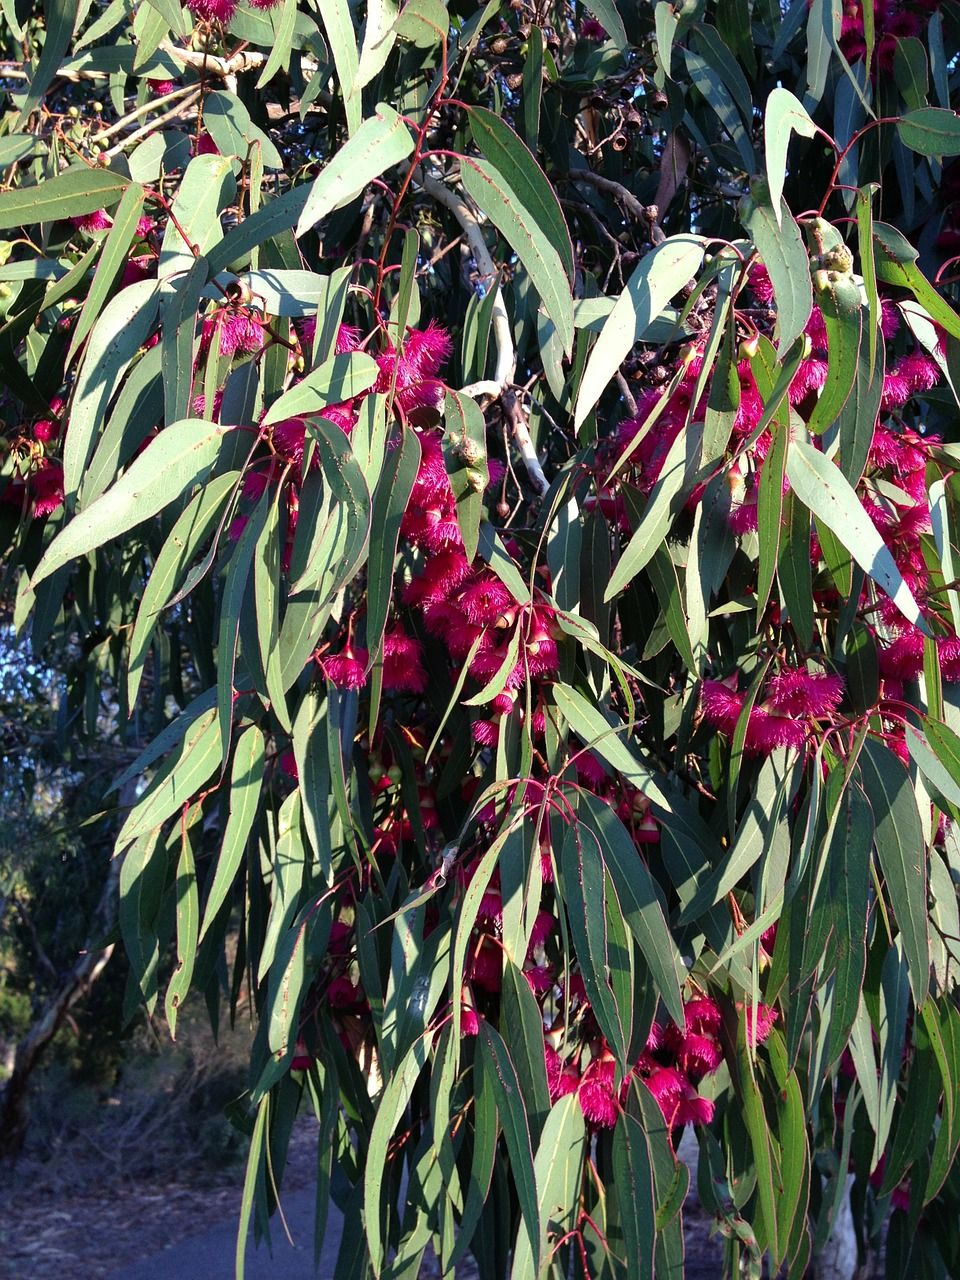 Australia Gum Tree Bloom Flowers Bush Spring Australia